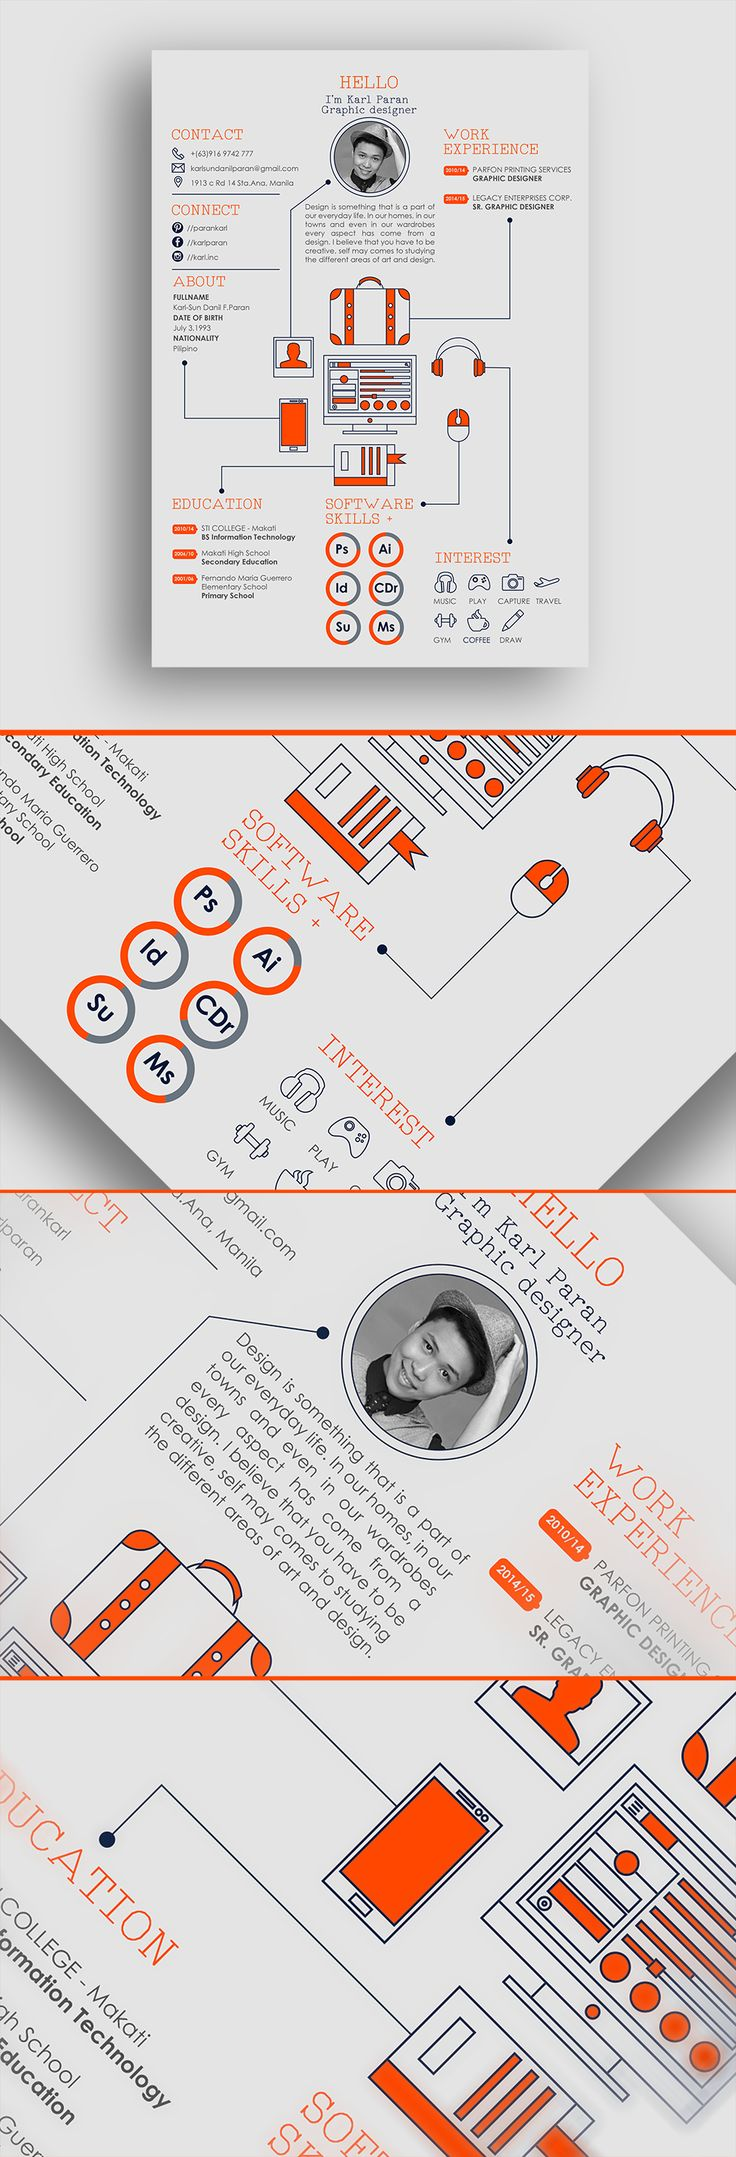 my curriculum vitae design to make it stand out. Resume Example. Resume CV Cover Letter